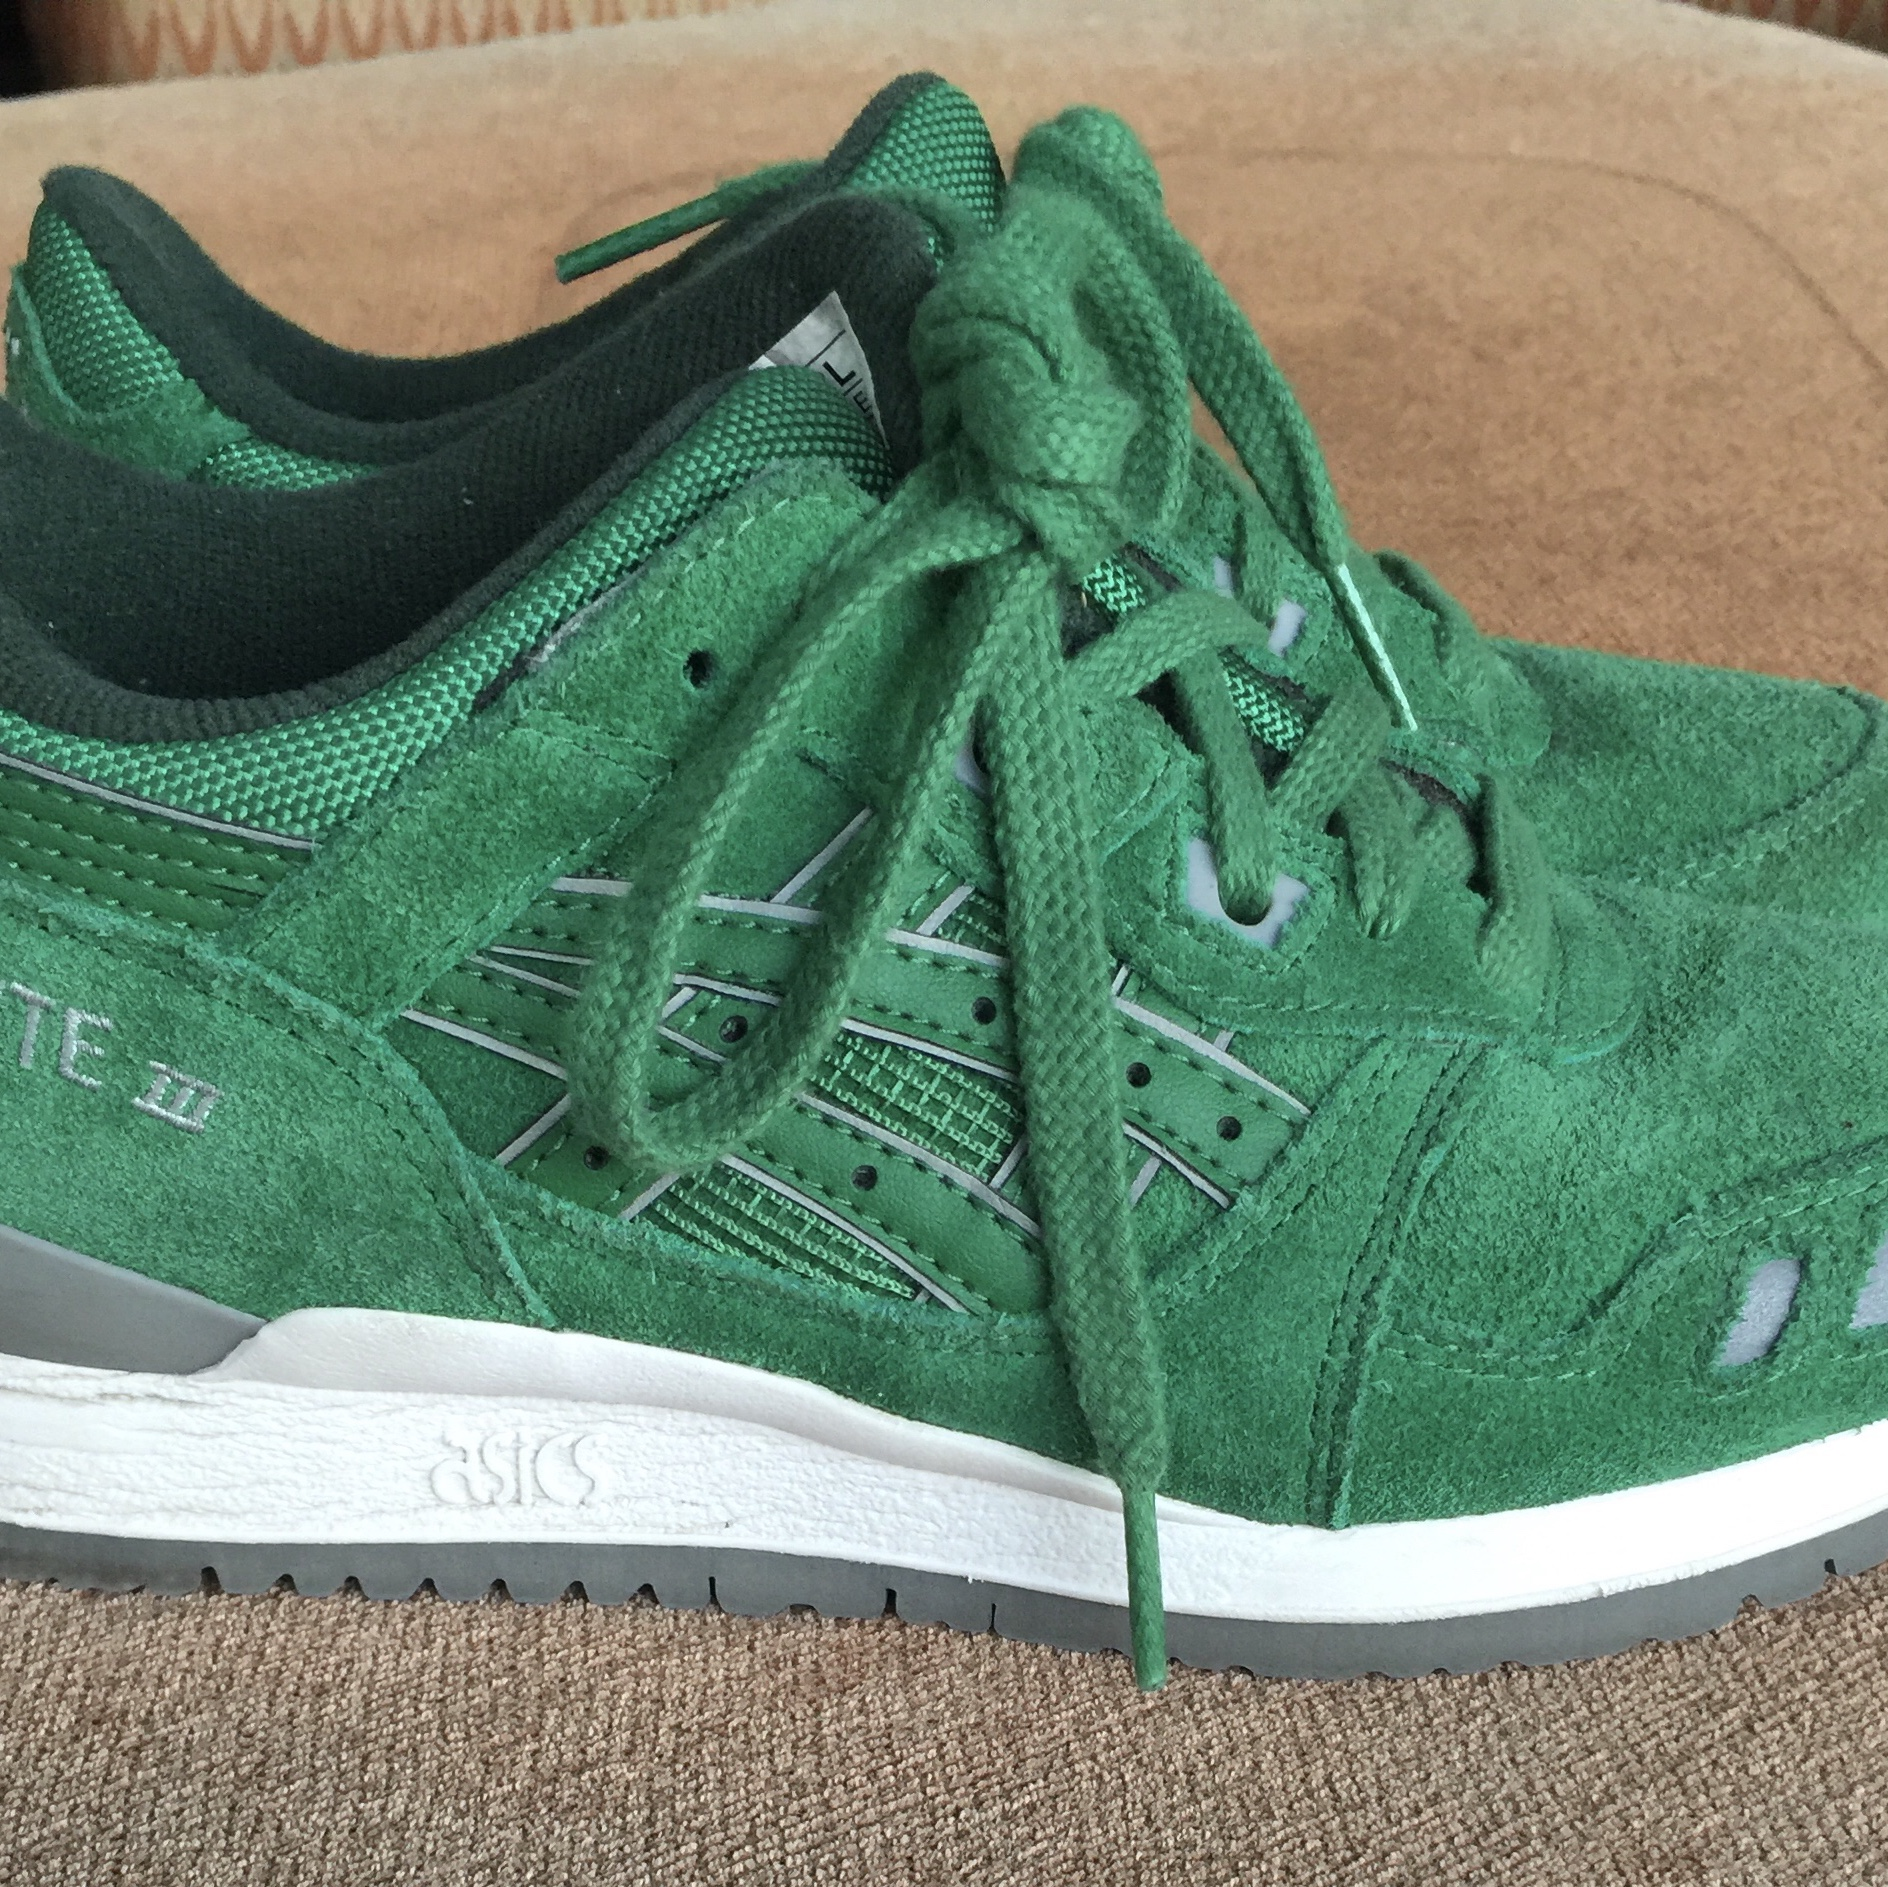 new product 6f885 55b43 Preowned Asics Gel Lyte III Green Suede Women's... - Depop